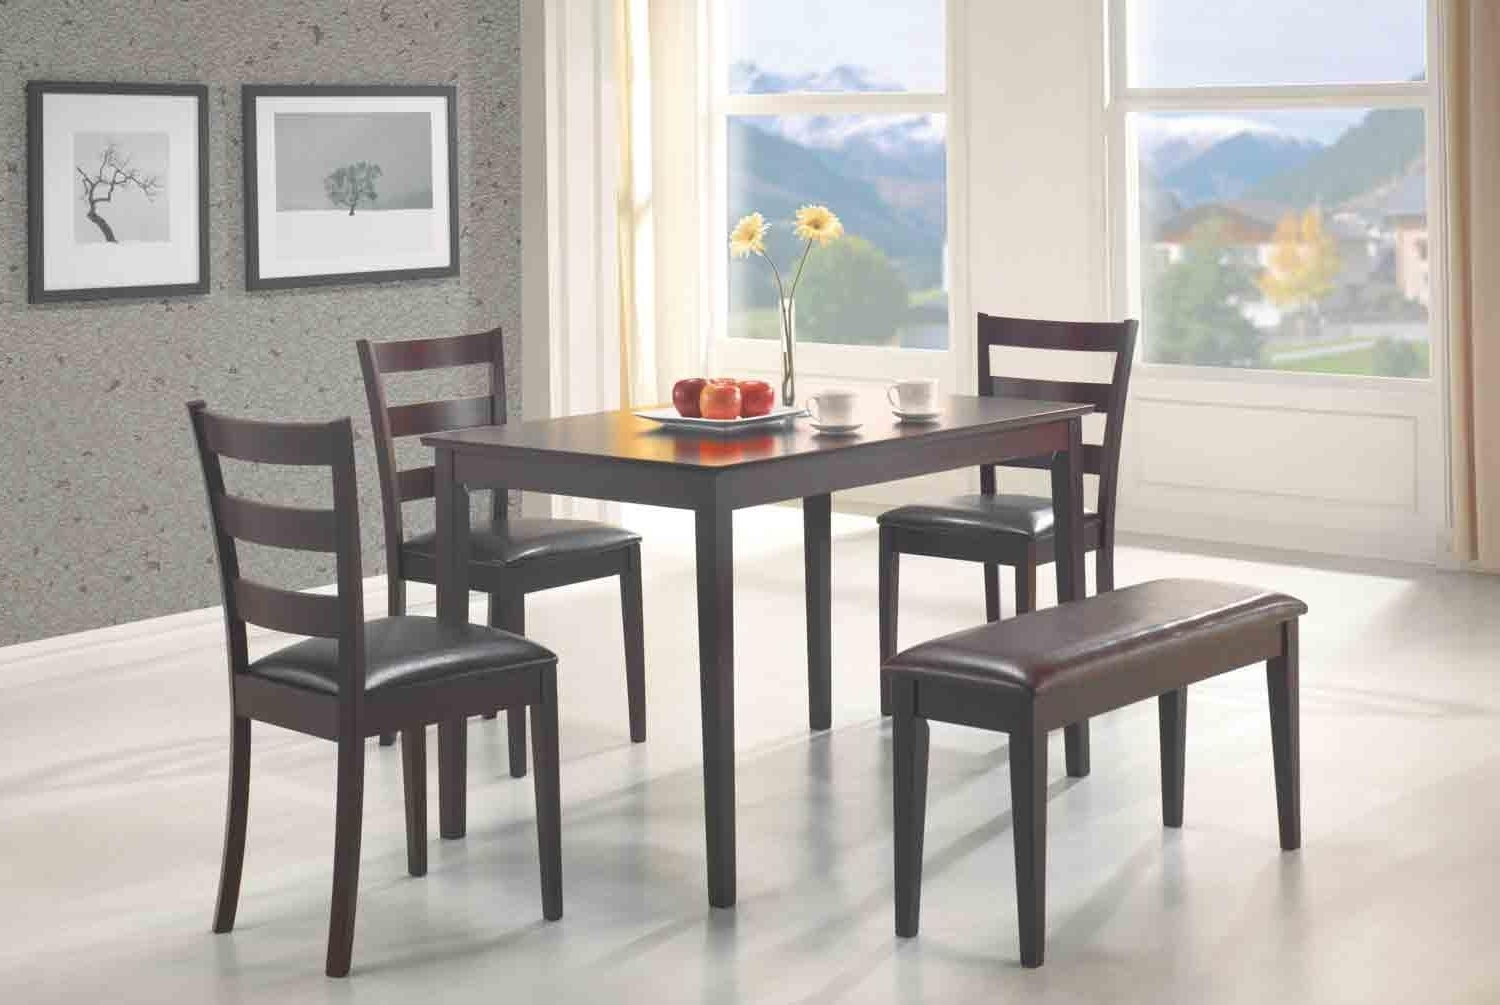 Trendy Your Furniture Outlet » Dining Intended For Cheap Dining Tables And Chairs (View 21 of 25)